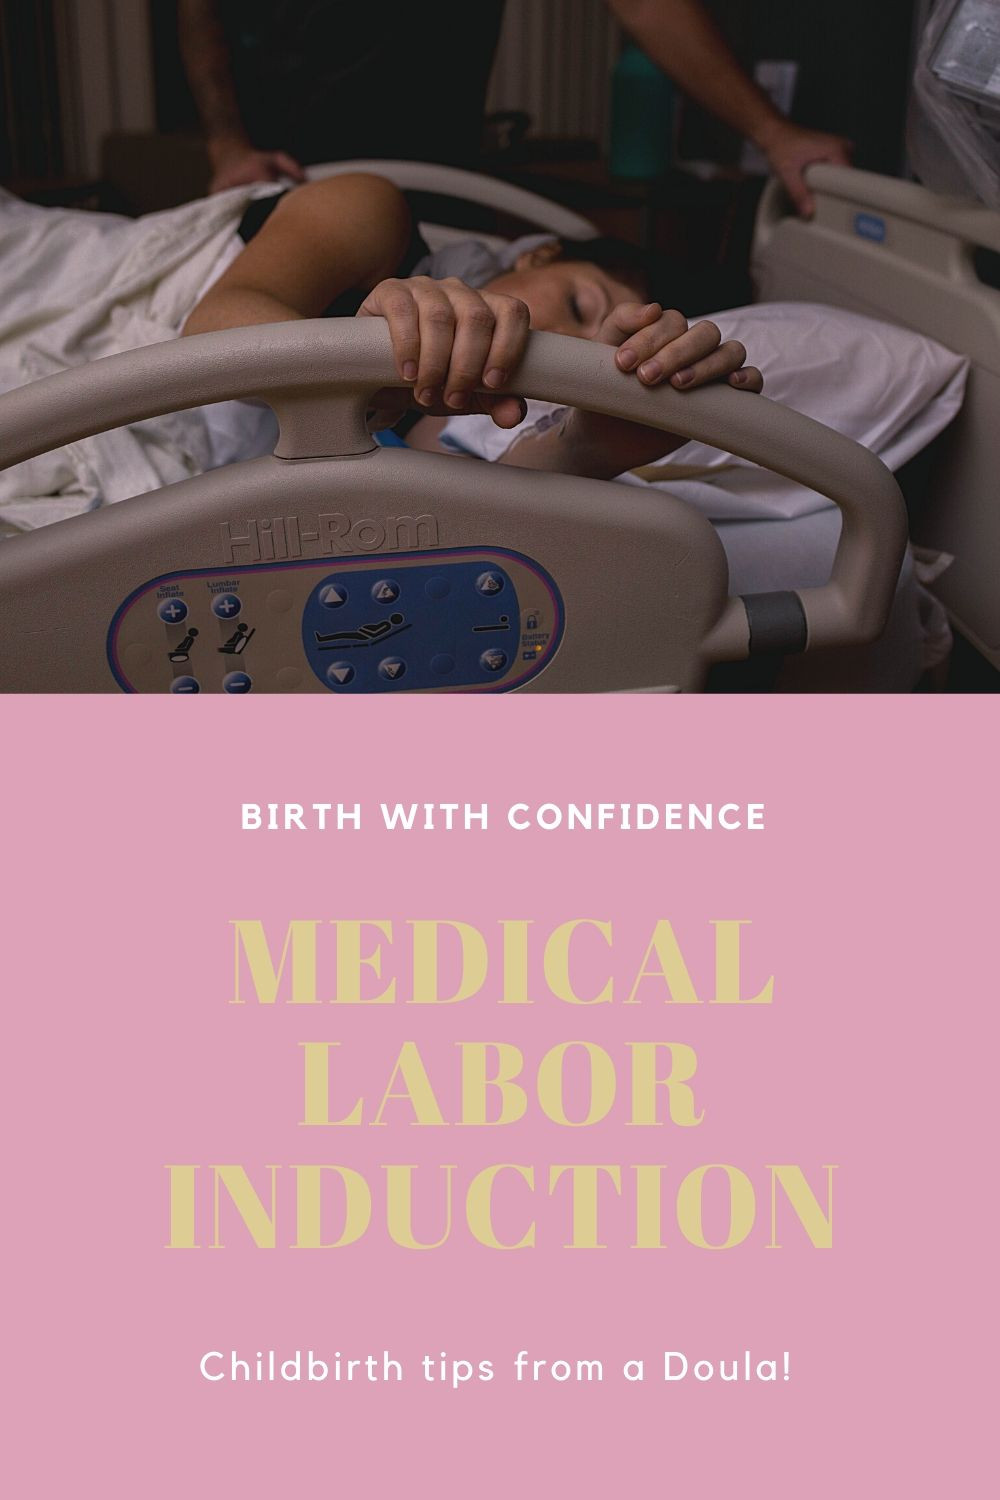 Woman labors in a hospital bed gripping bed rail graphic reads birth with confidence medical labor induction childbirth tips from a doula tips for labor induction online childbirth education class online birth classes